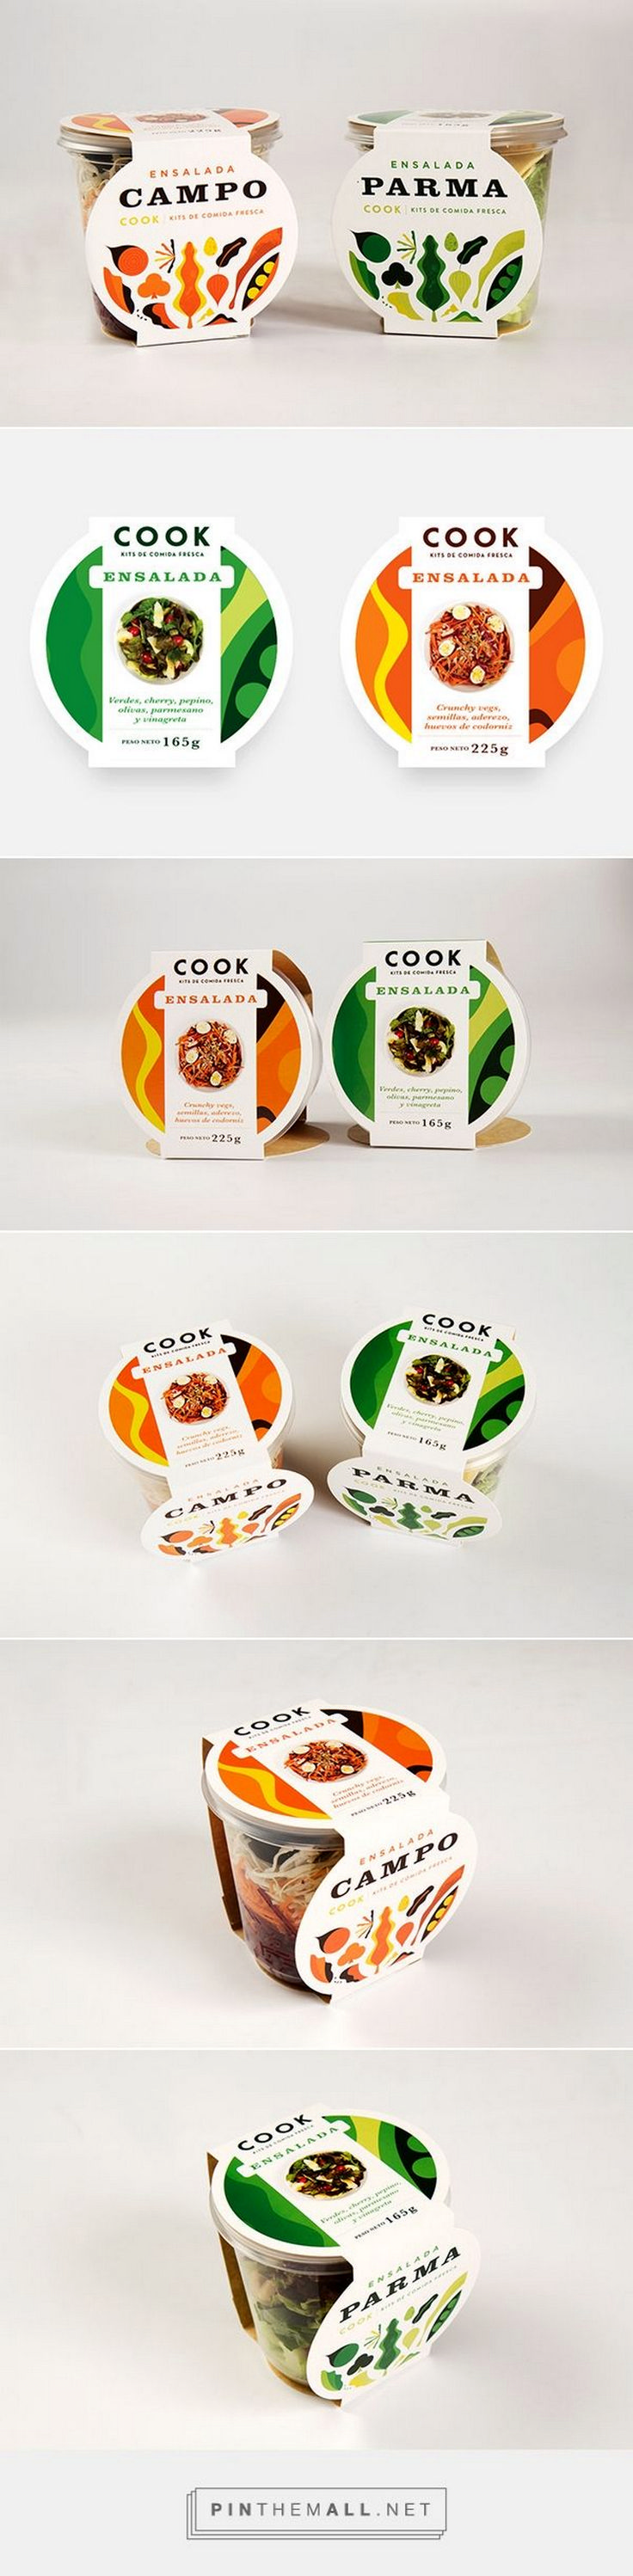 Food infographic - 5 Food Packaging Design Trends for Contemporary Products - InfographicNow.com | Your Number One Source For daily infographics & visual creativity